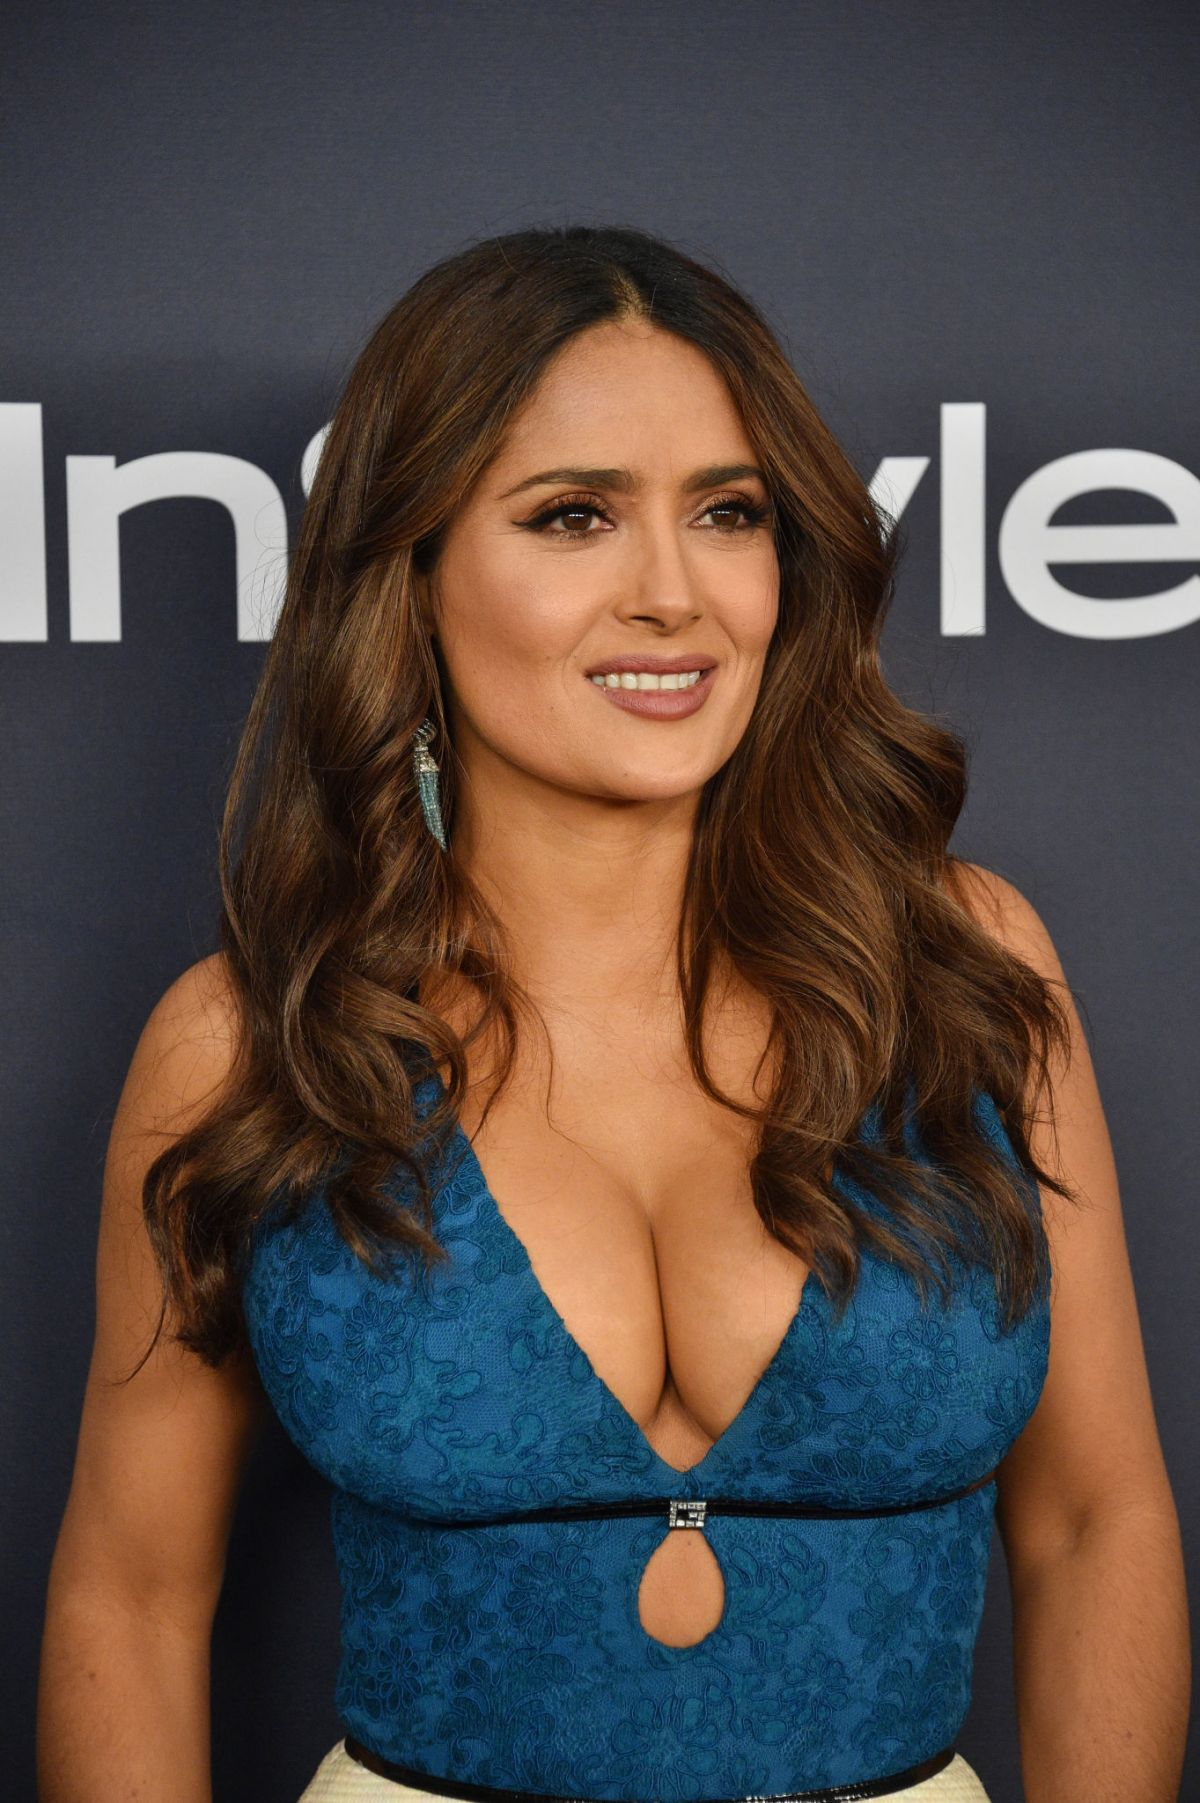 SALMA HAYEK at Instyle and Warner Bros. Golden Globe Awards Party 01\/05\/2020 – HawtCelebs